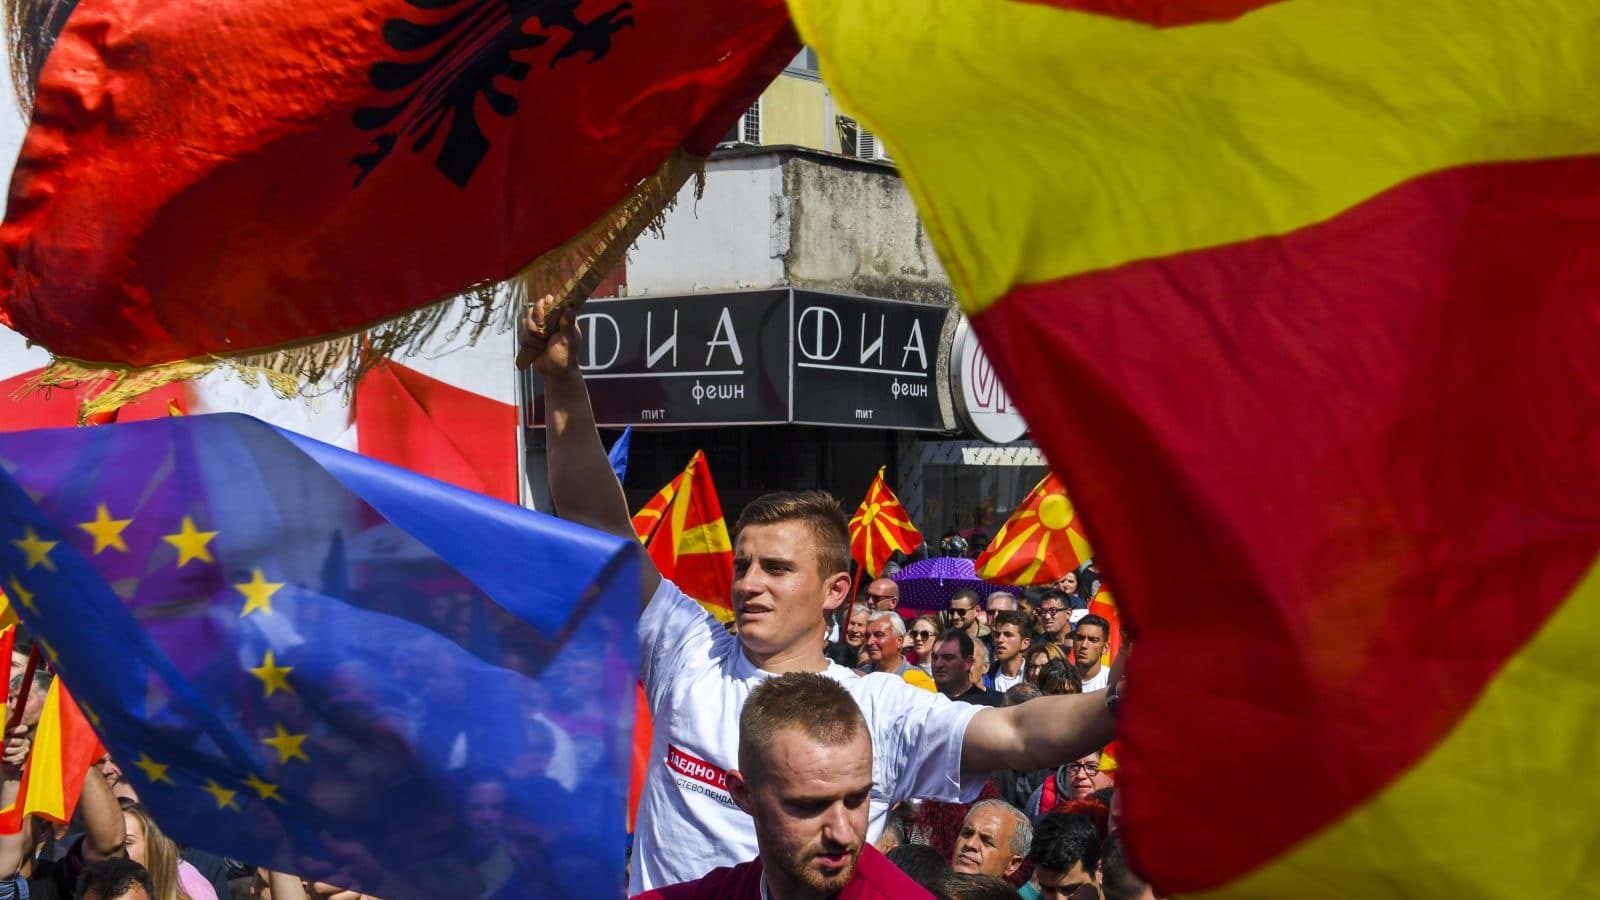 EU Enlargement: The Balkans Brexit Fallout | Balkan Insight